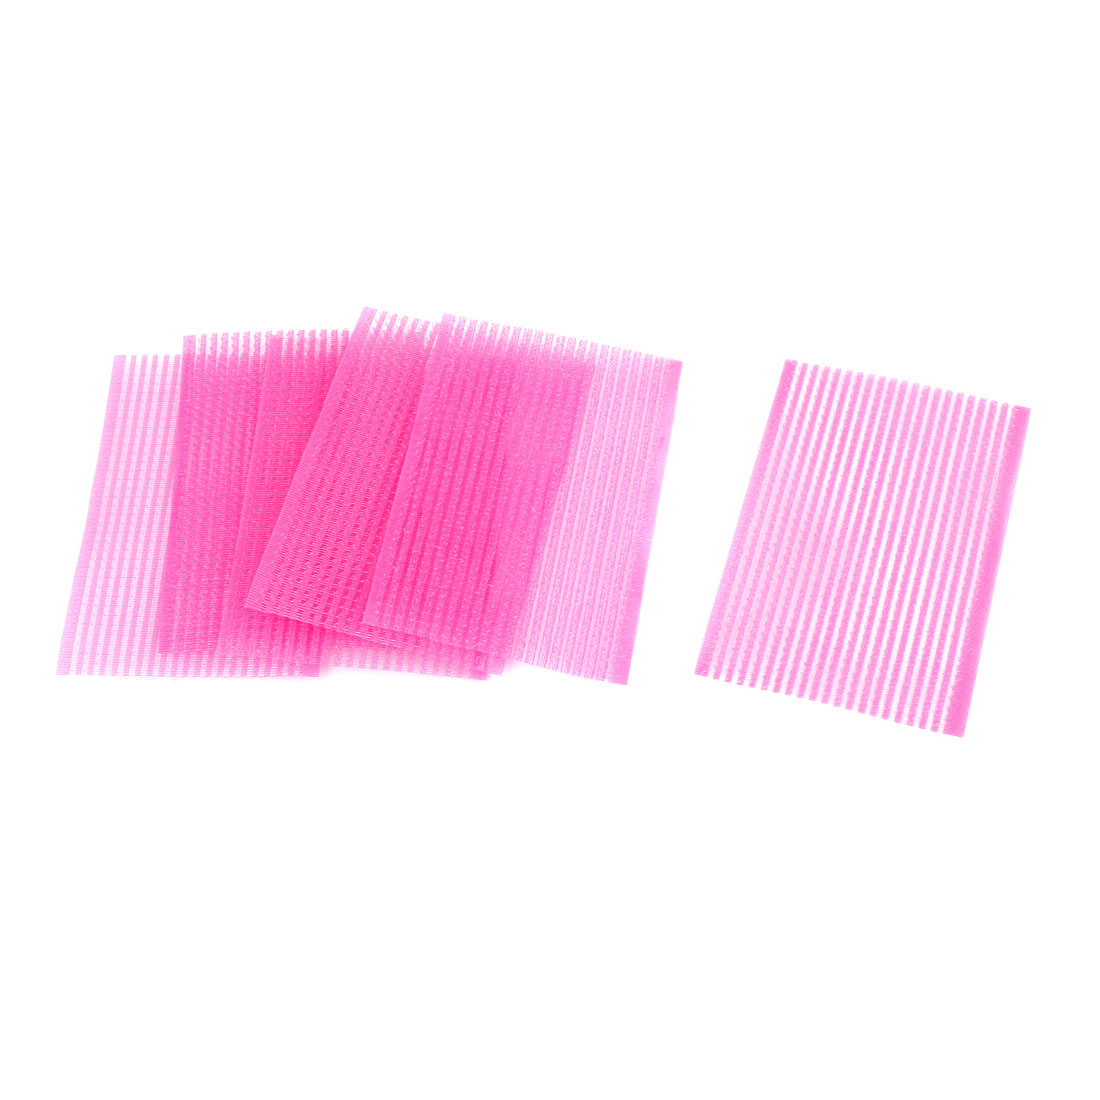 Lady Plastic Magic Paste Posts Fringe Hair Bangs Stickers Pink 3 Bags